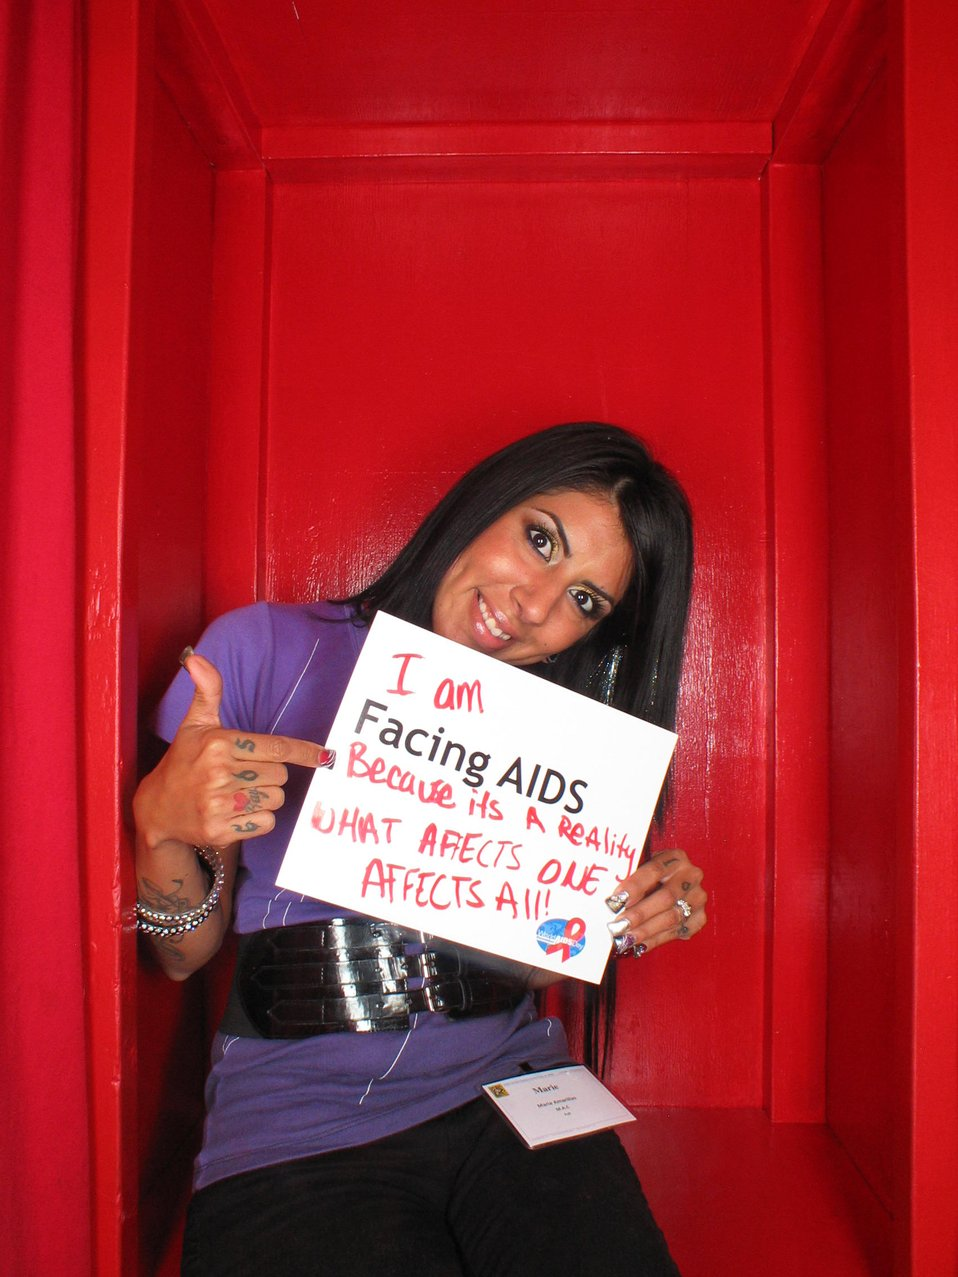 Facing AIDS because its a reality what affects one affects all.